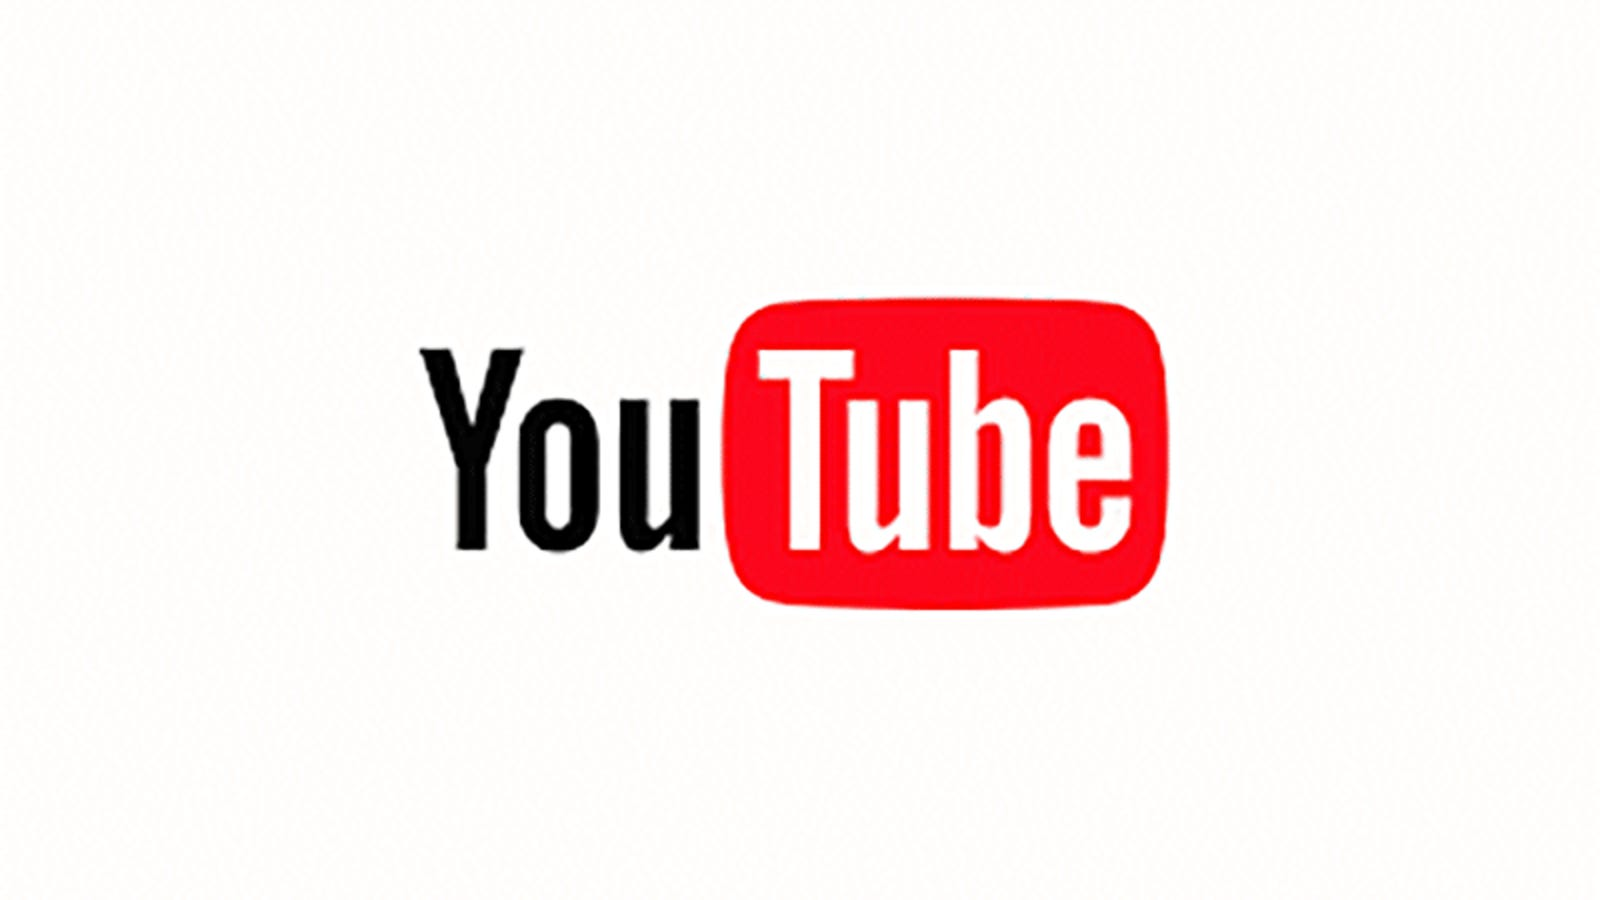 World Of Dance Font: YouTube Moved The Red Thing And Life Will Never Be The Same